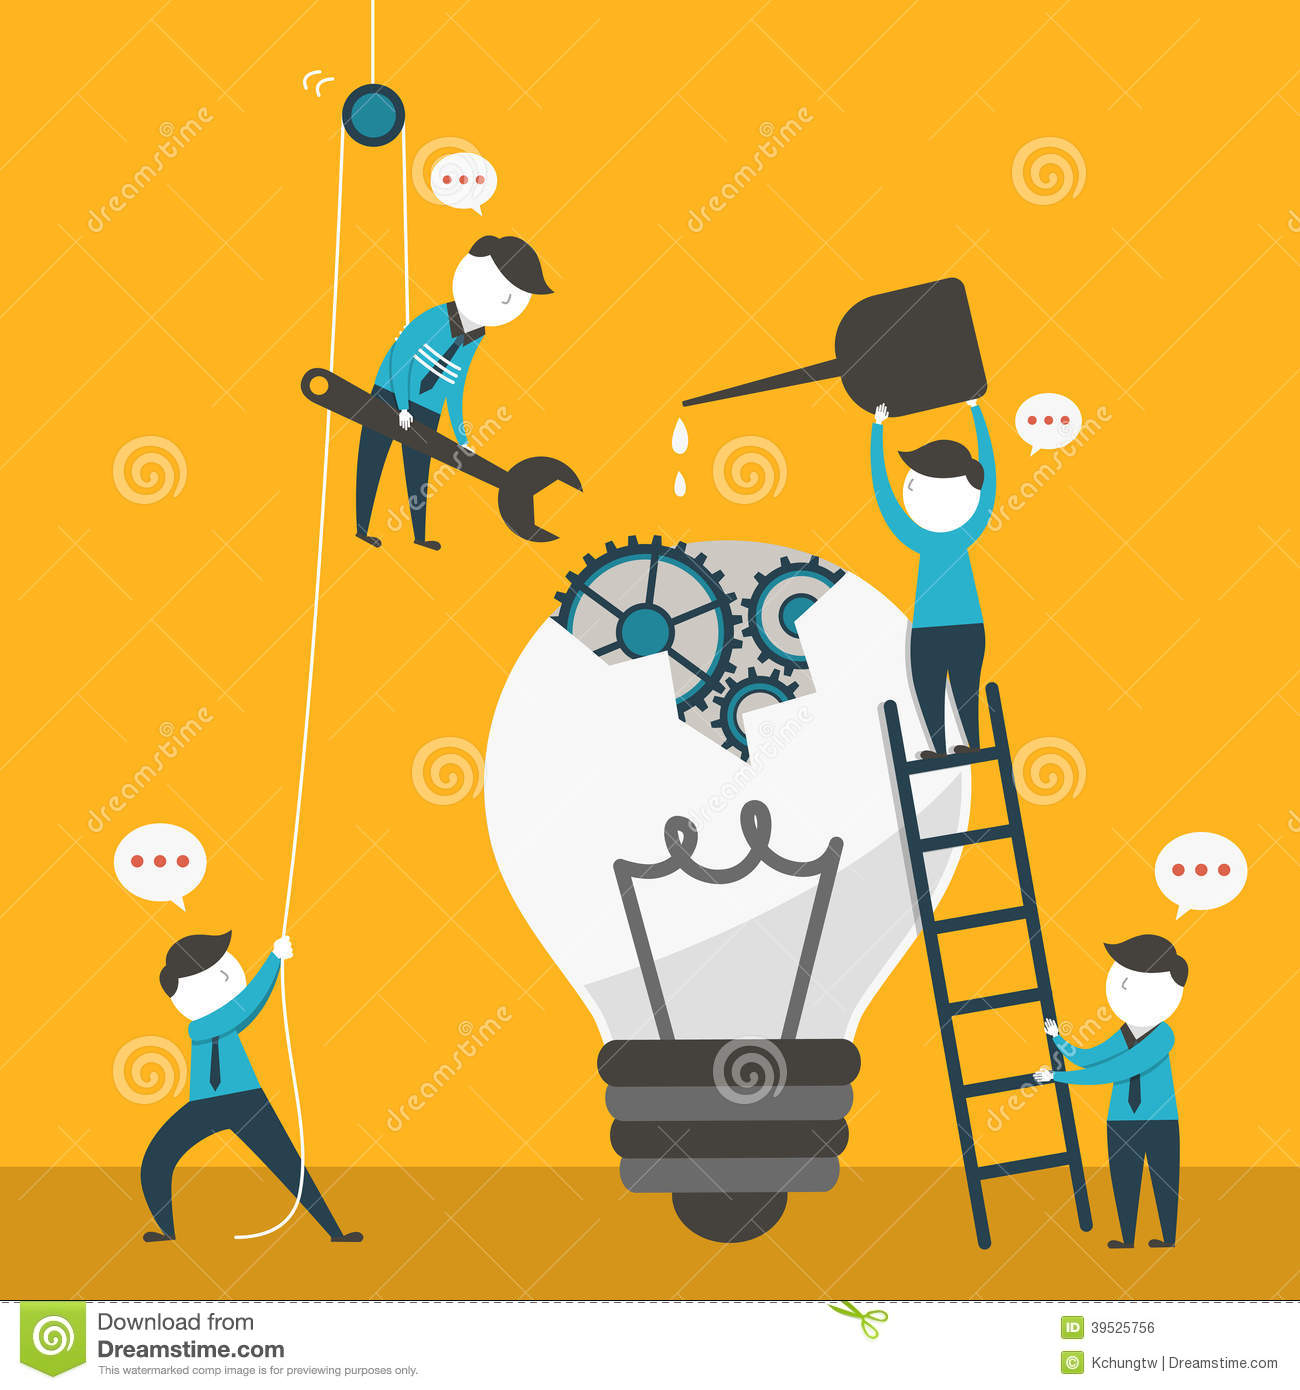 Illustration Concept Of Team Work Stock Vector